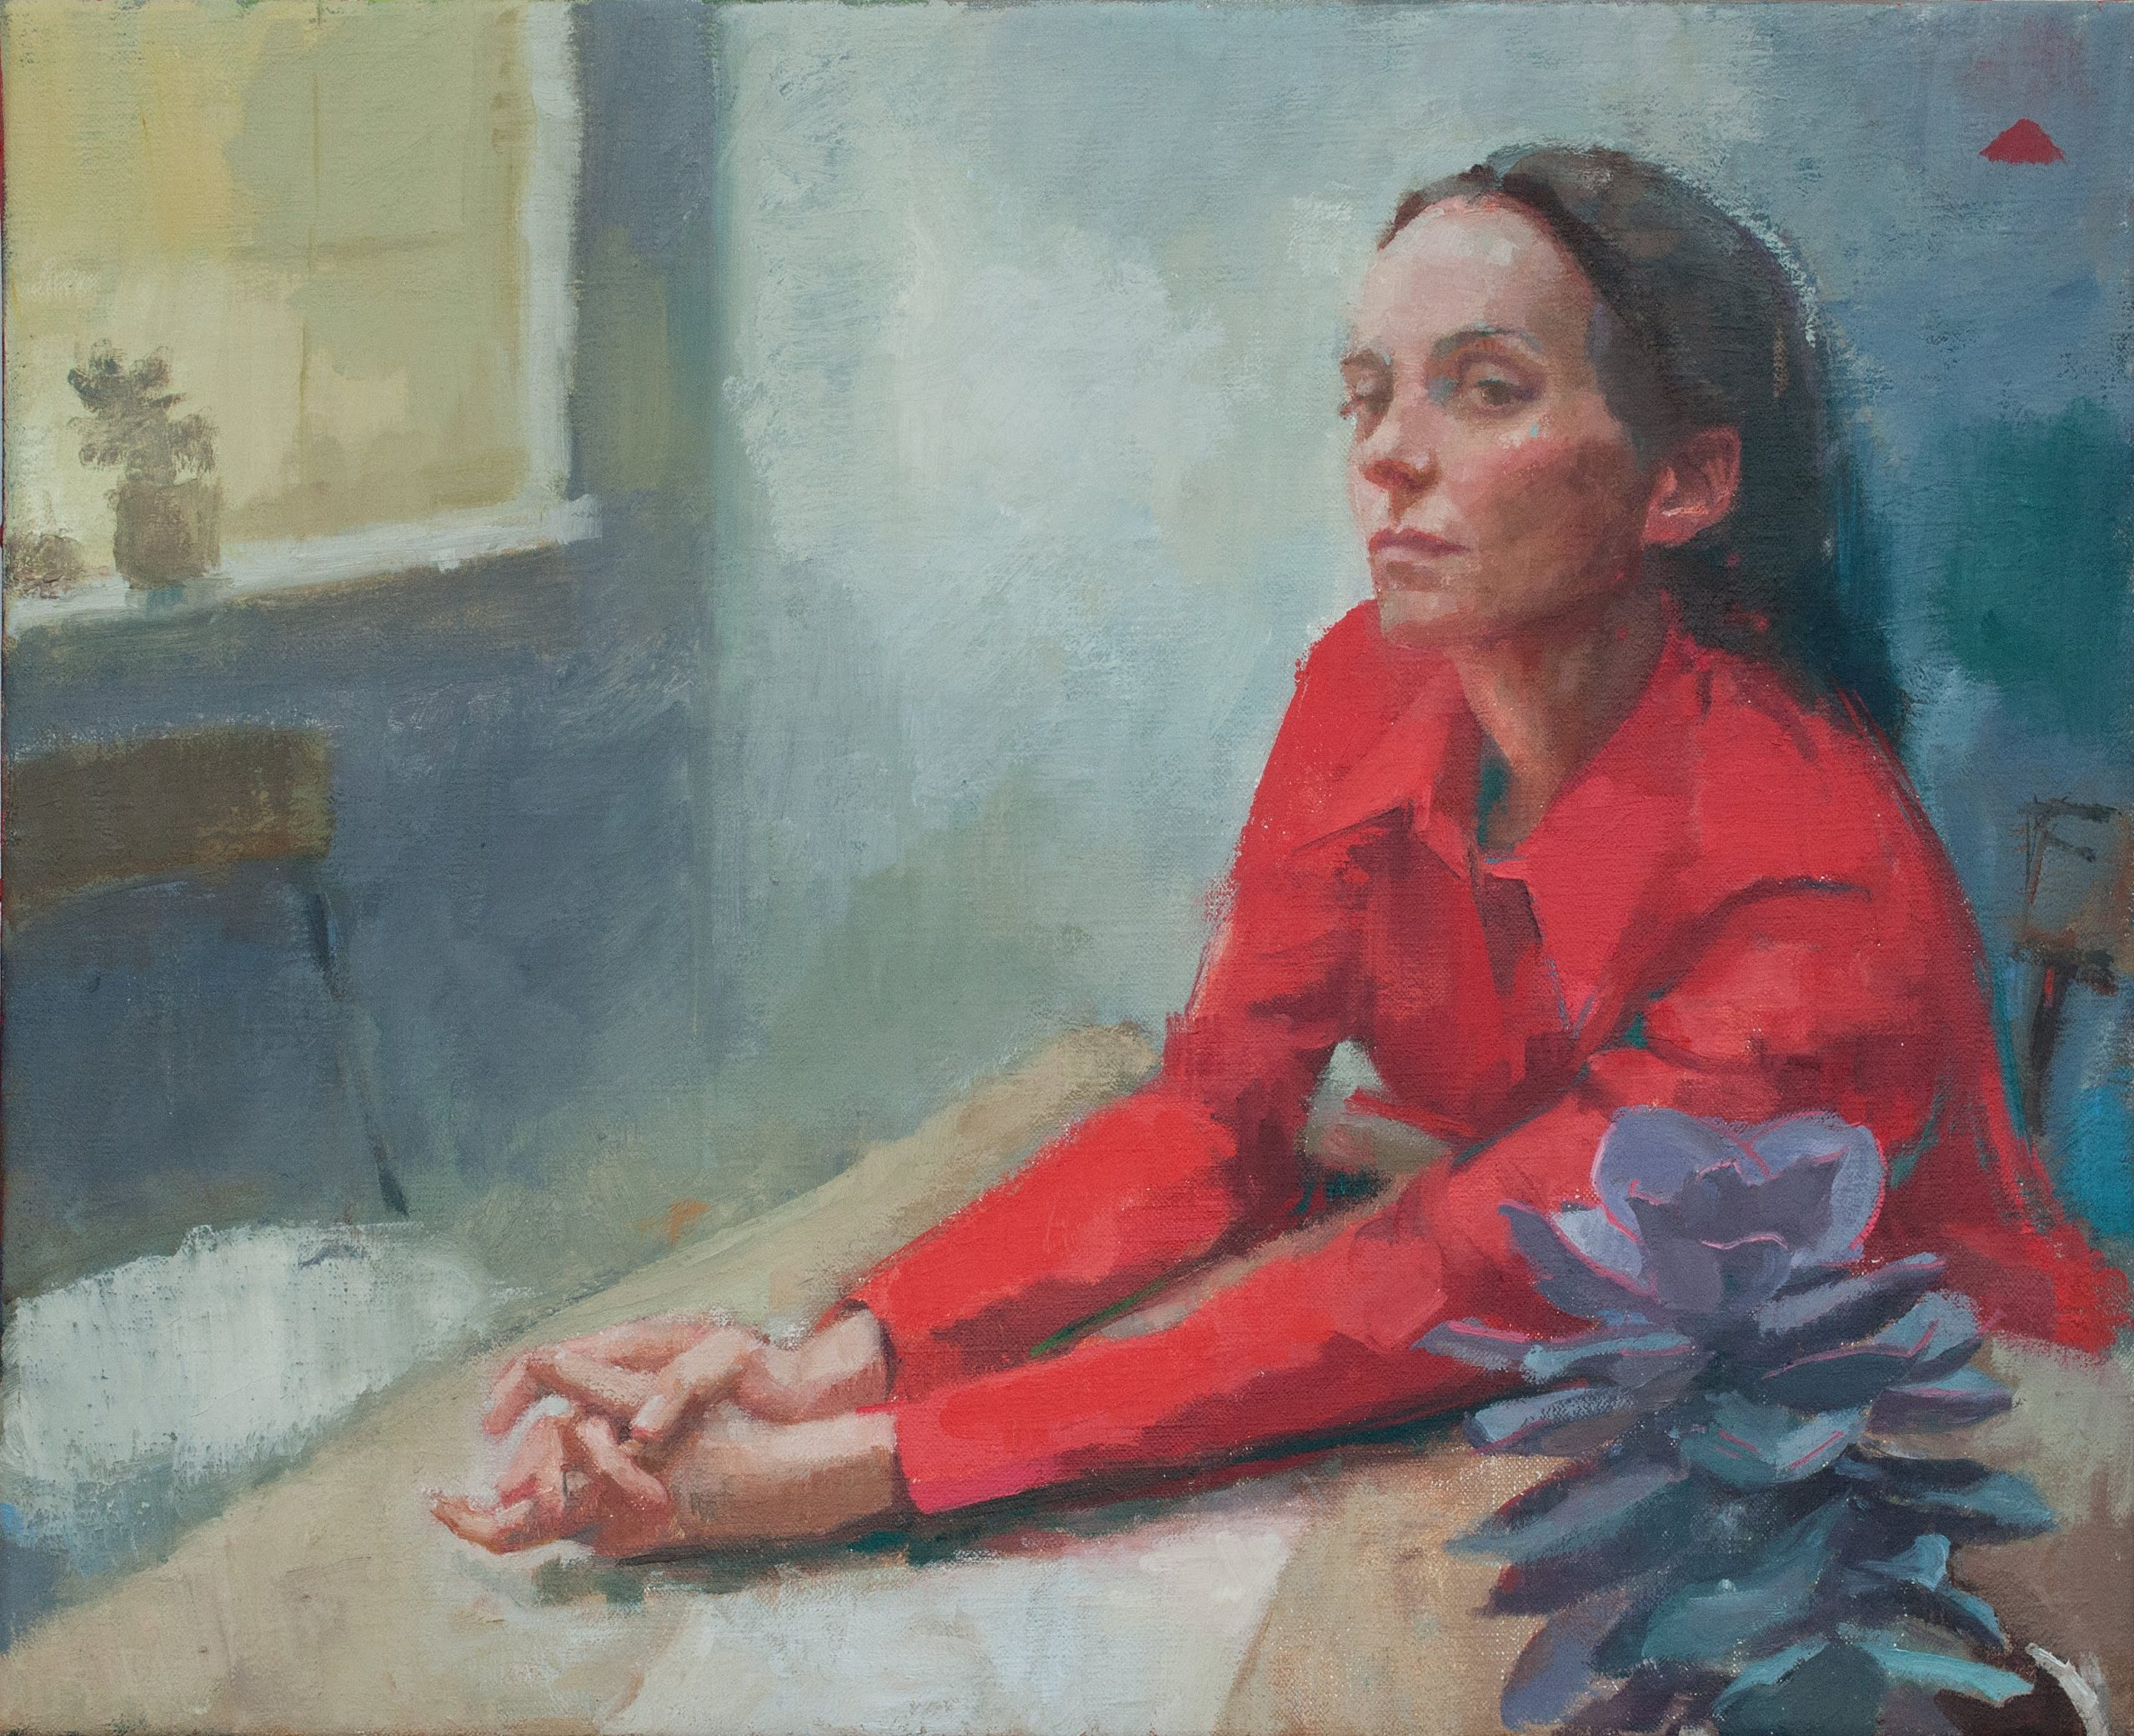 """Ilaria Rosselli Del Turco - Woman with Red Shirt - Oil on Linen - 16"""" x 20"""""""